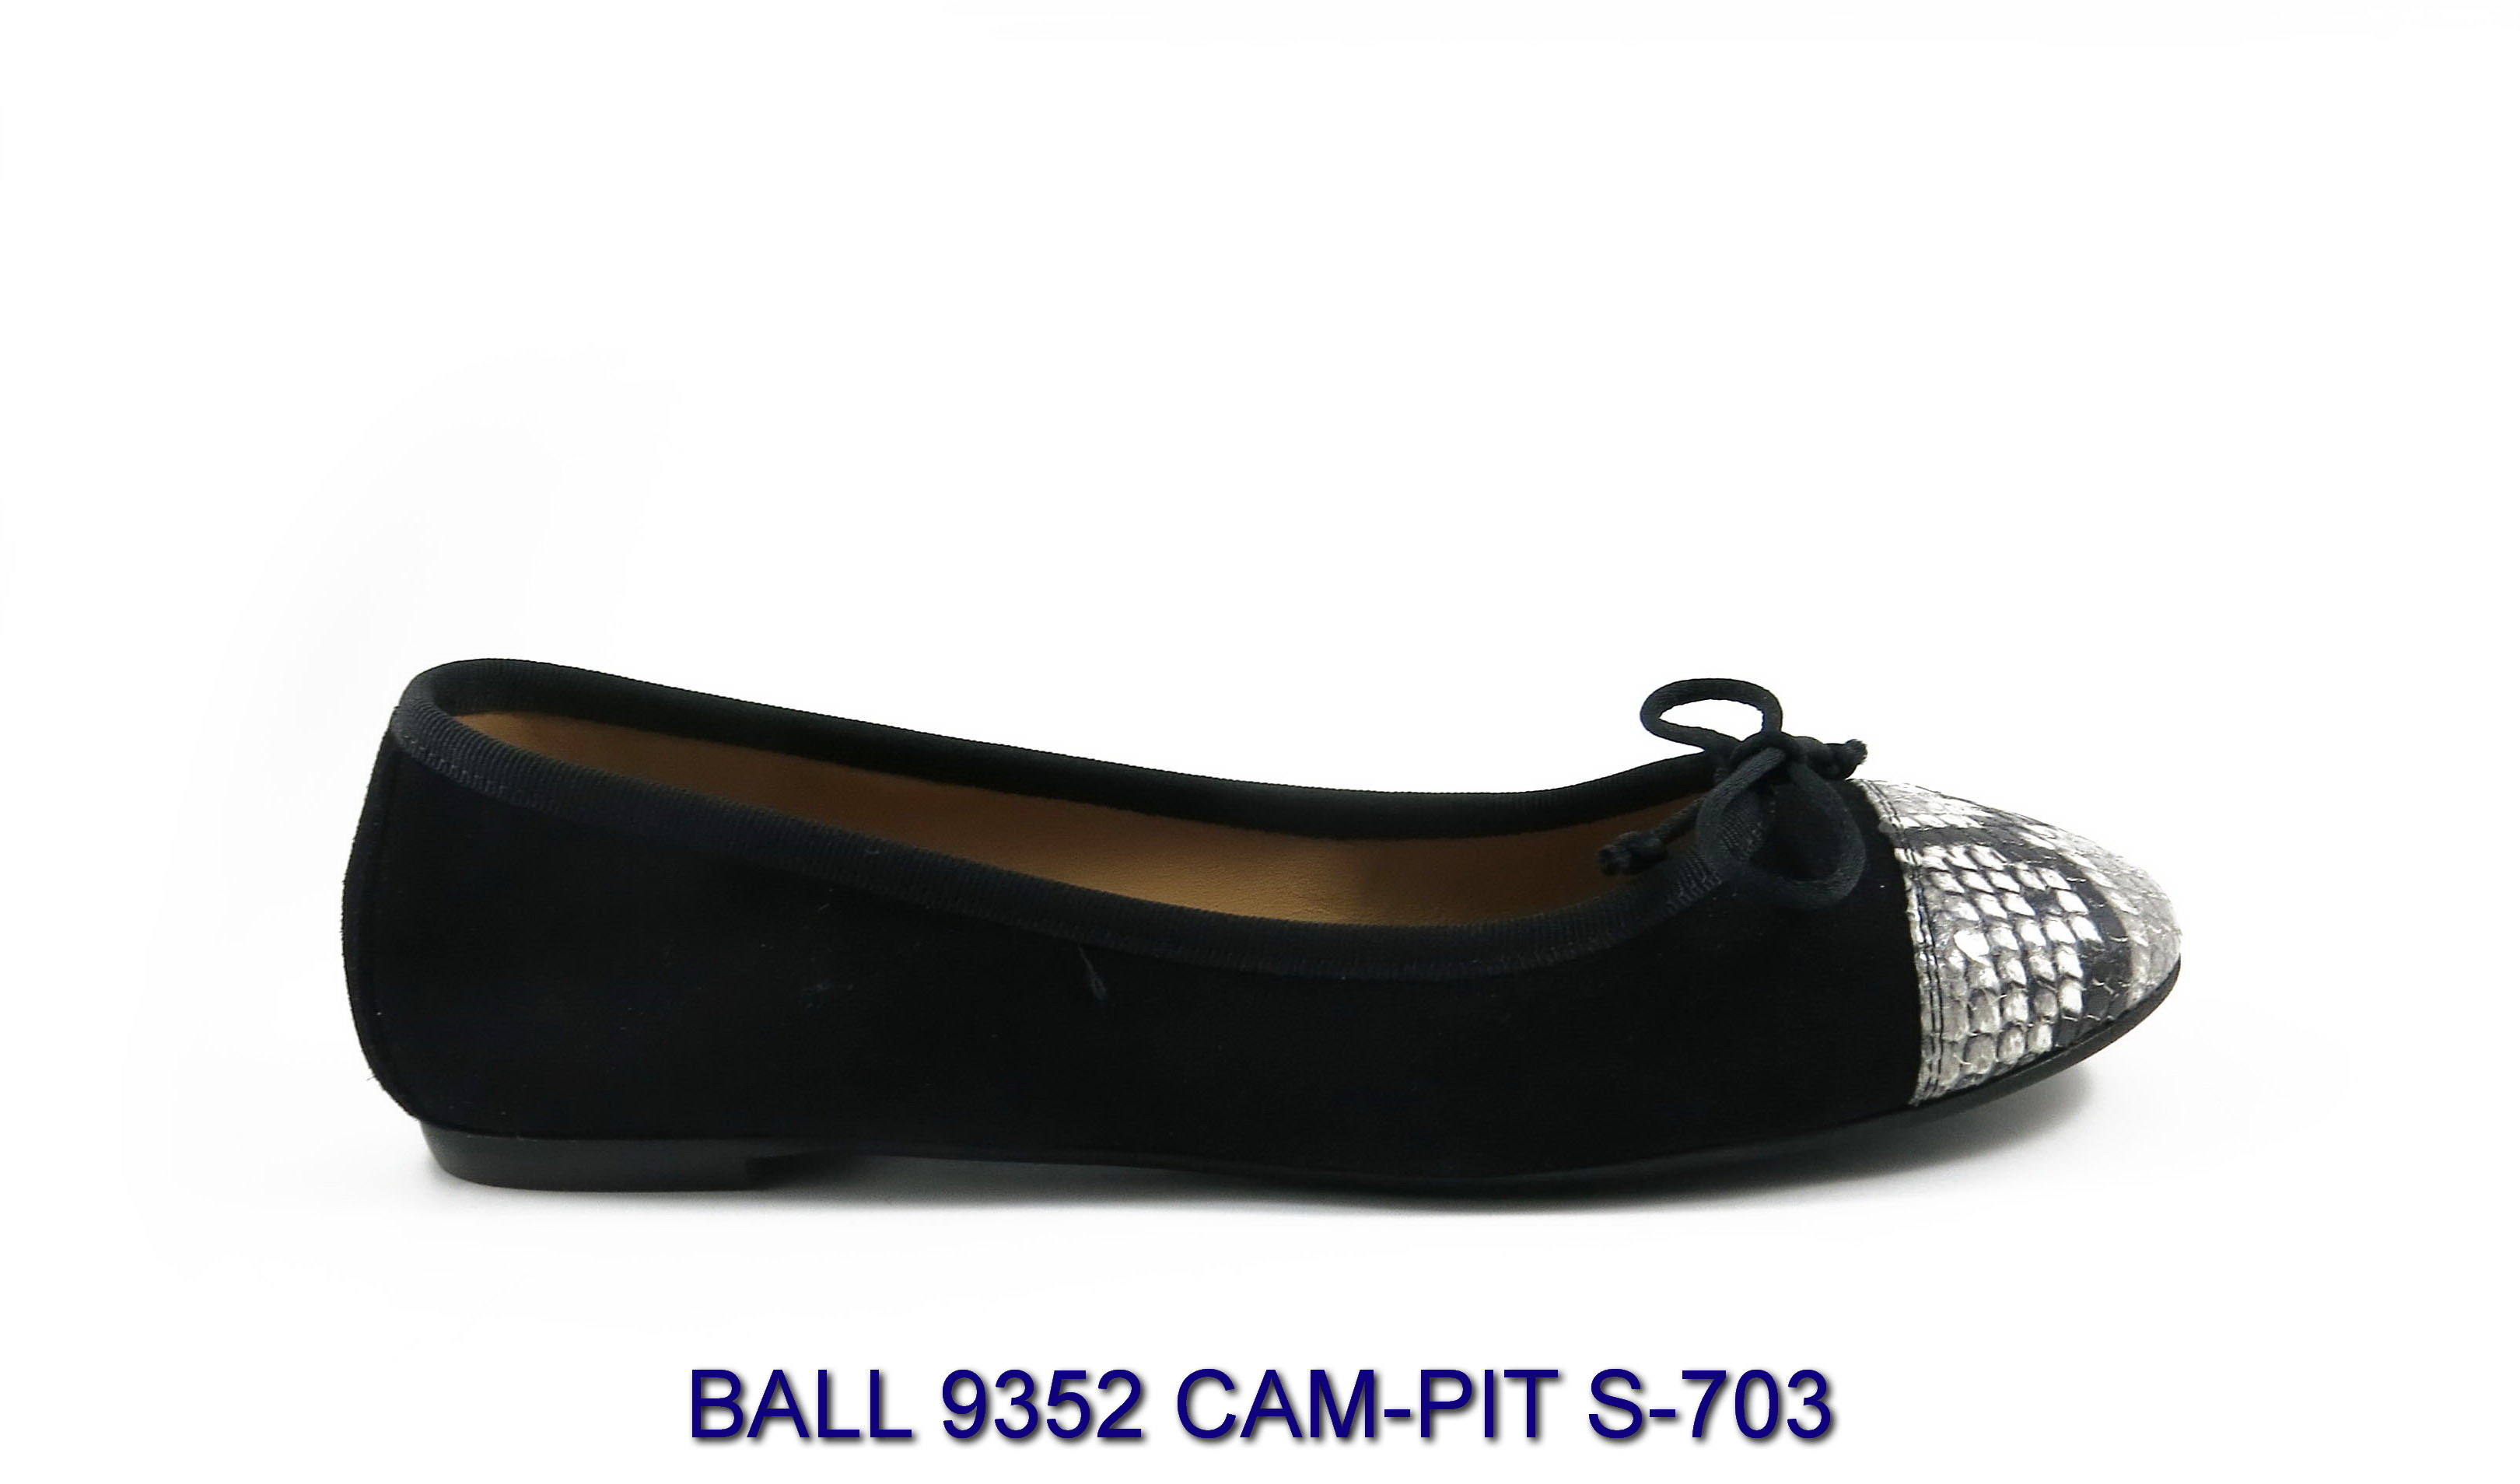 BALL-9352-CAM-PIT-S-703